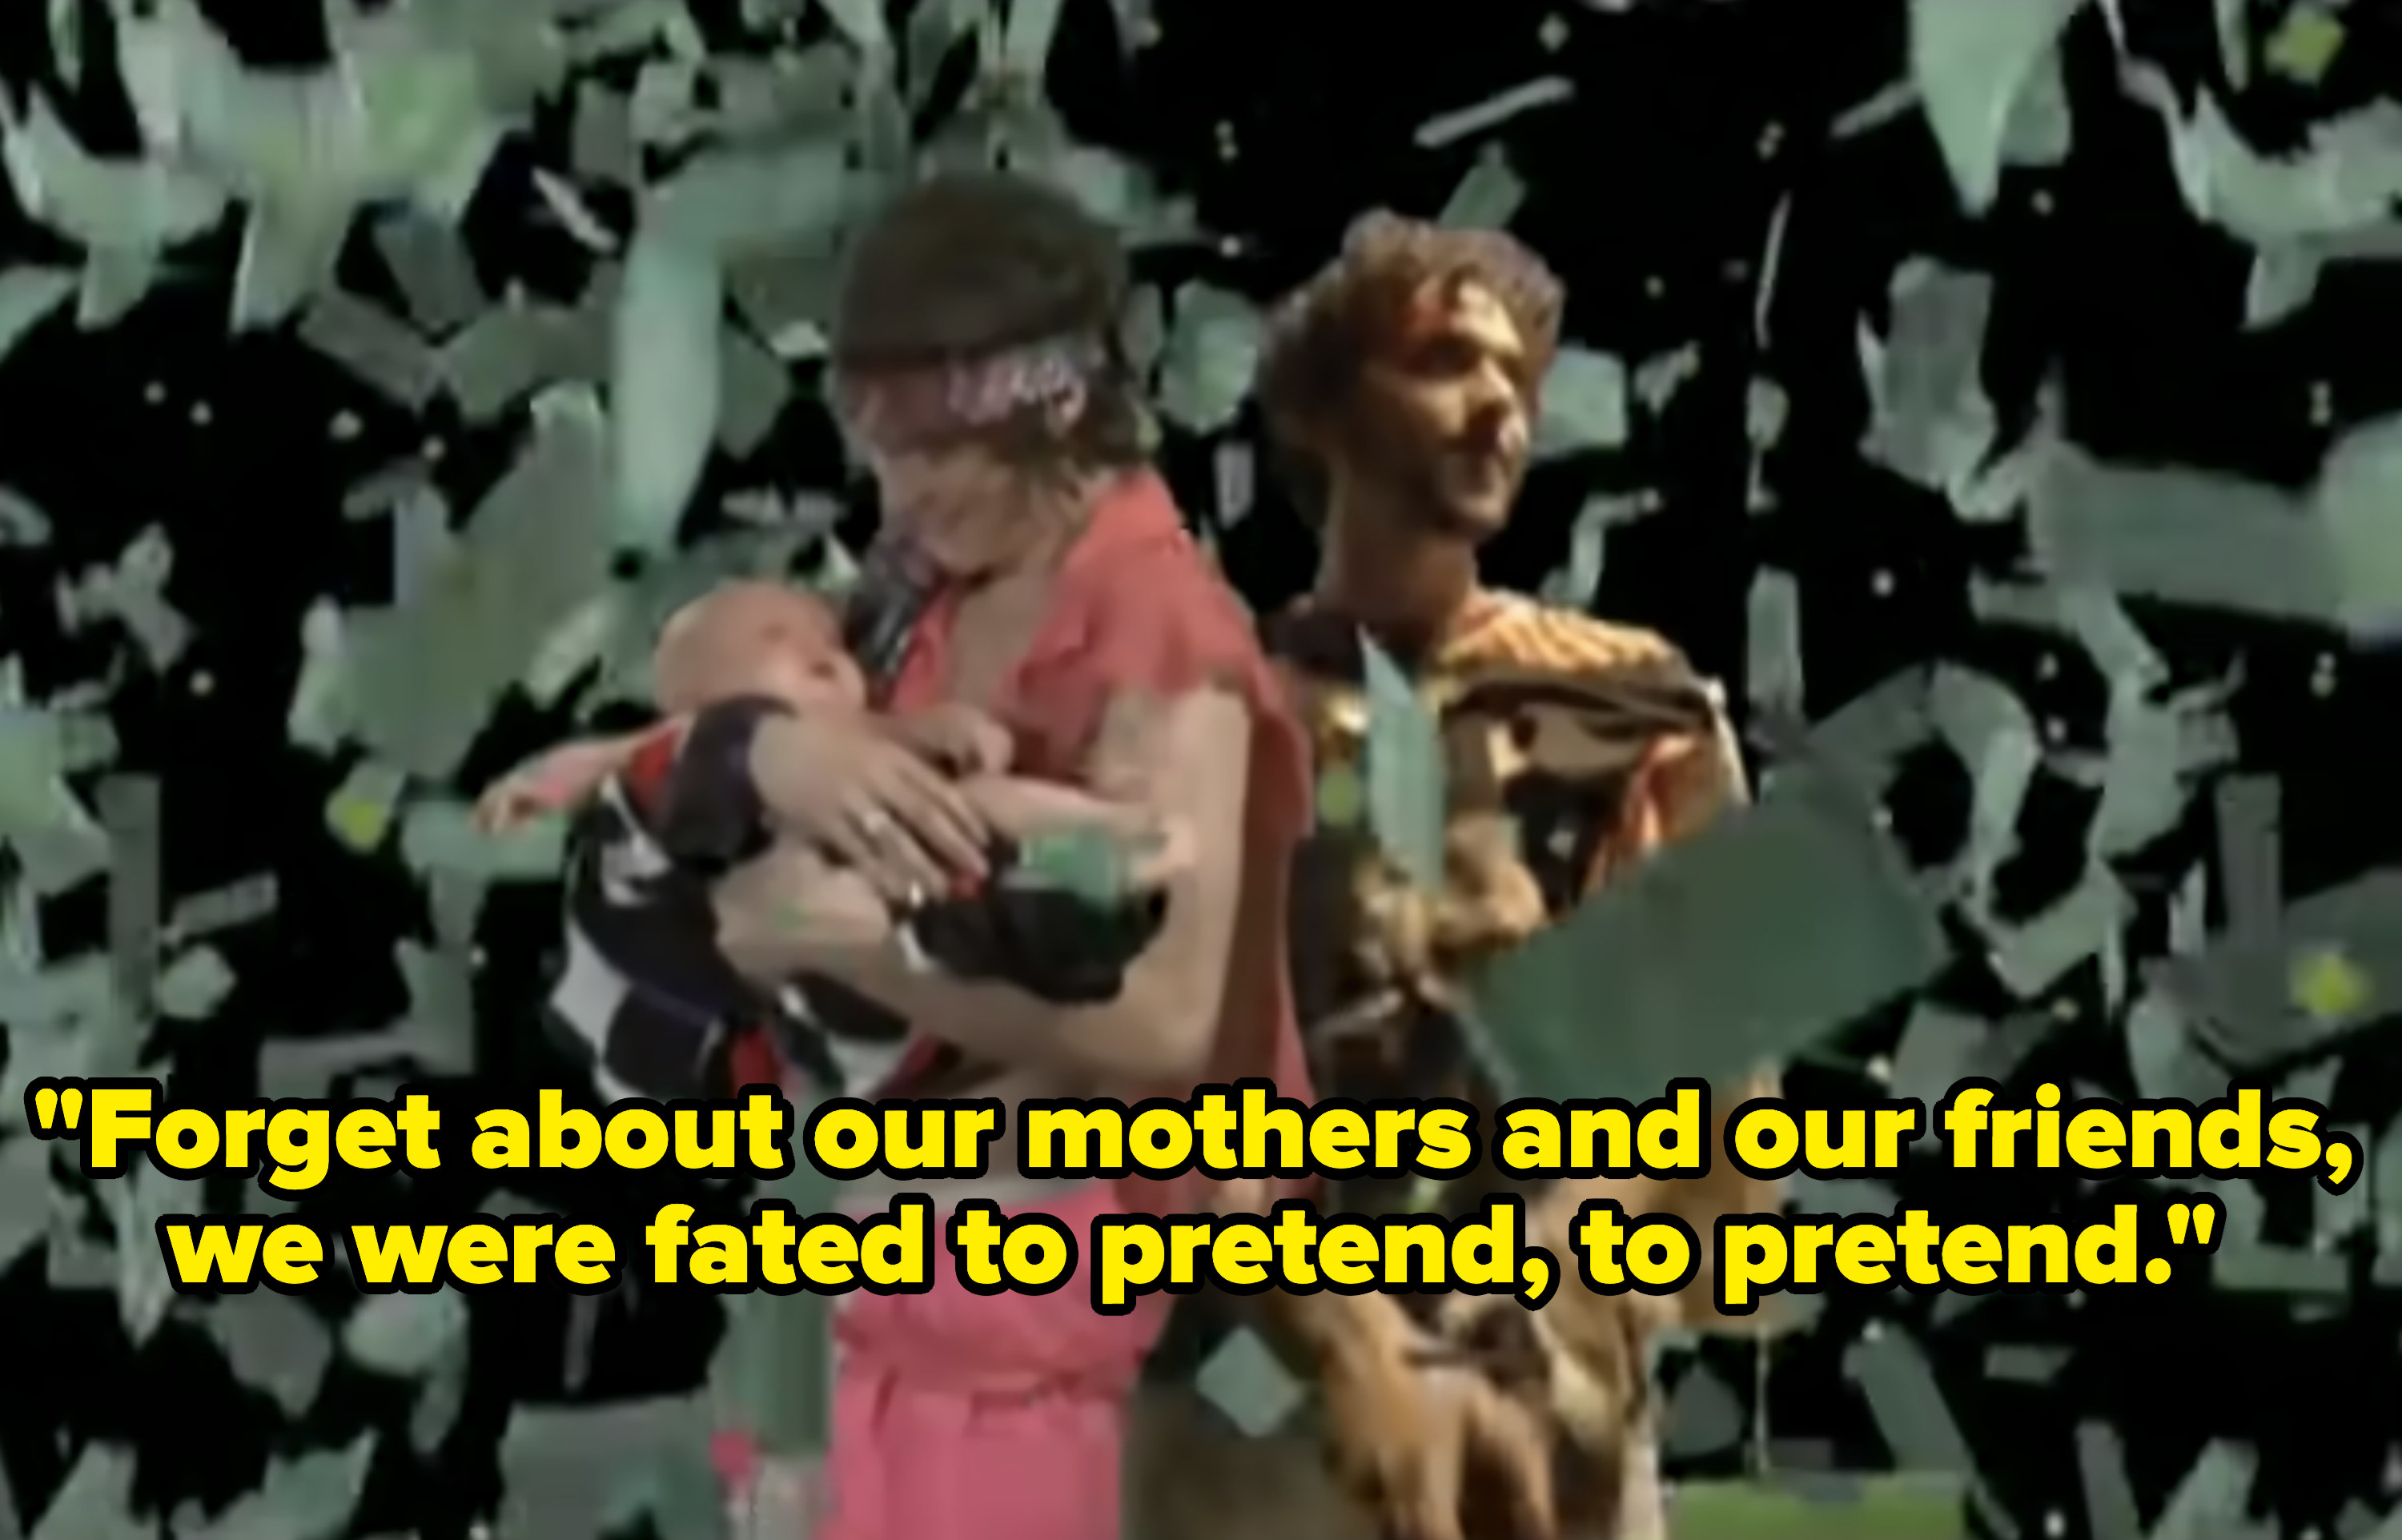 Psychedelic photo of MGMT in a room raining money while Andrew holds a baby.